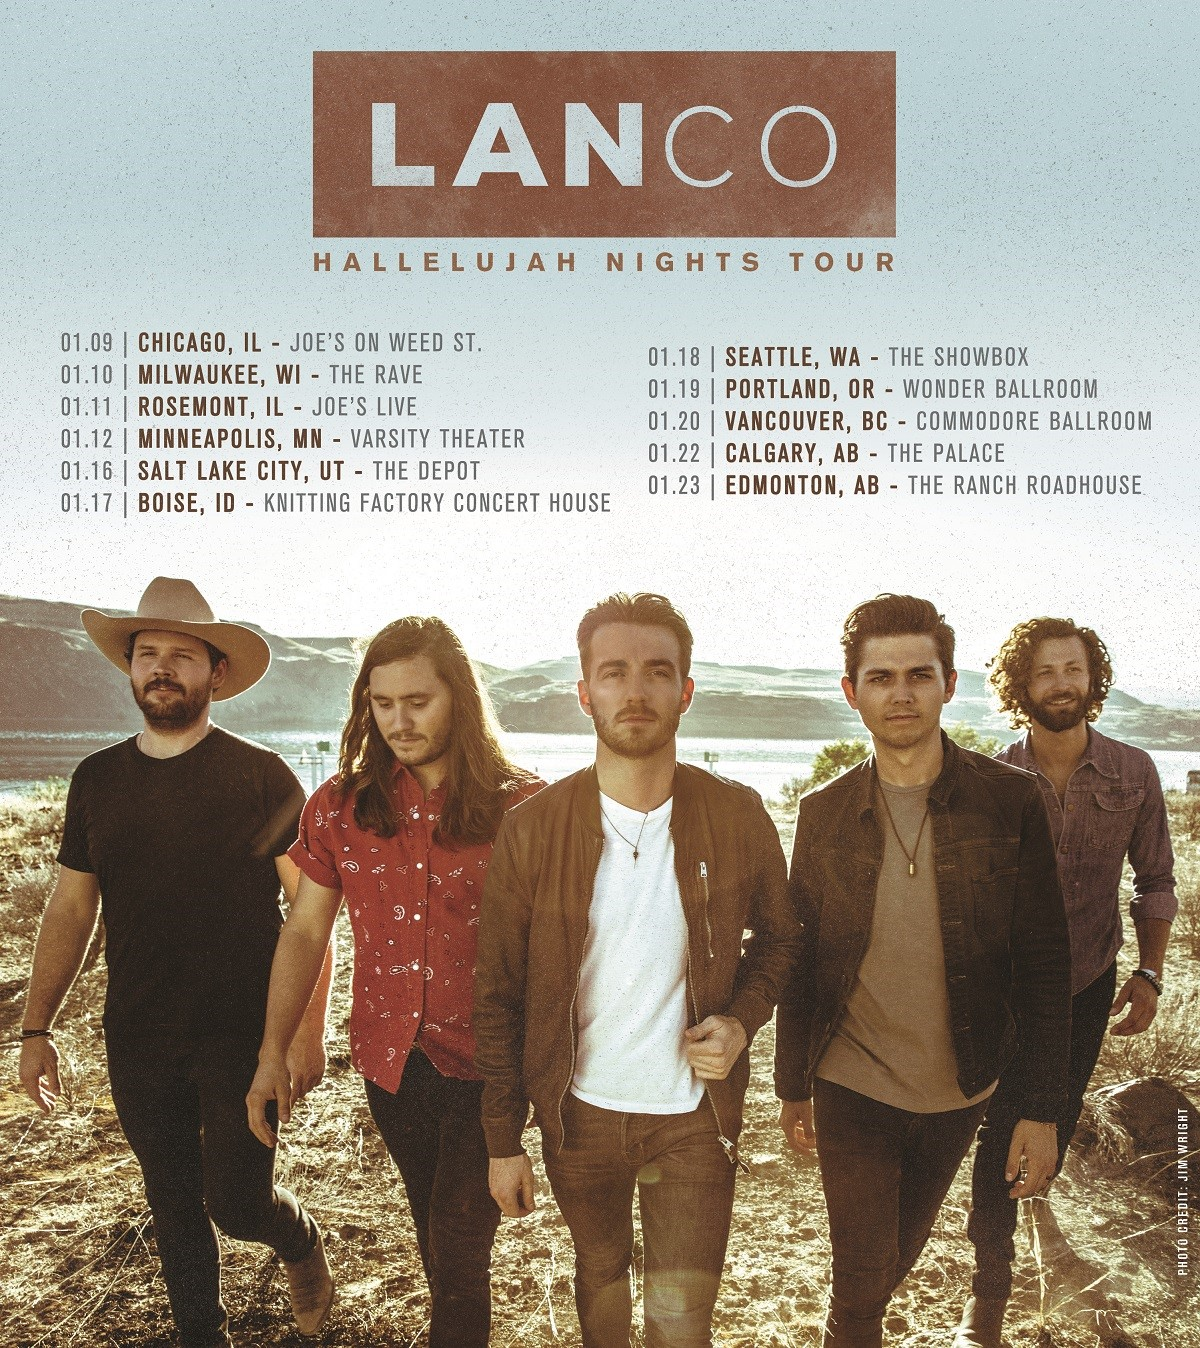 LANCO ADDS MORE DATES TO FIRST-EVER HEADLINING HALLELUJAH NIGHTS TOUR